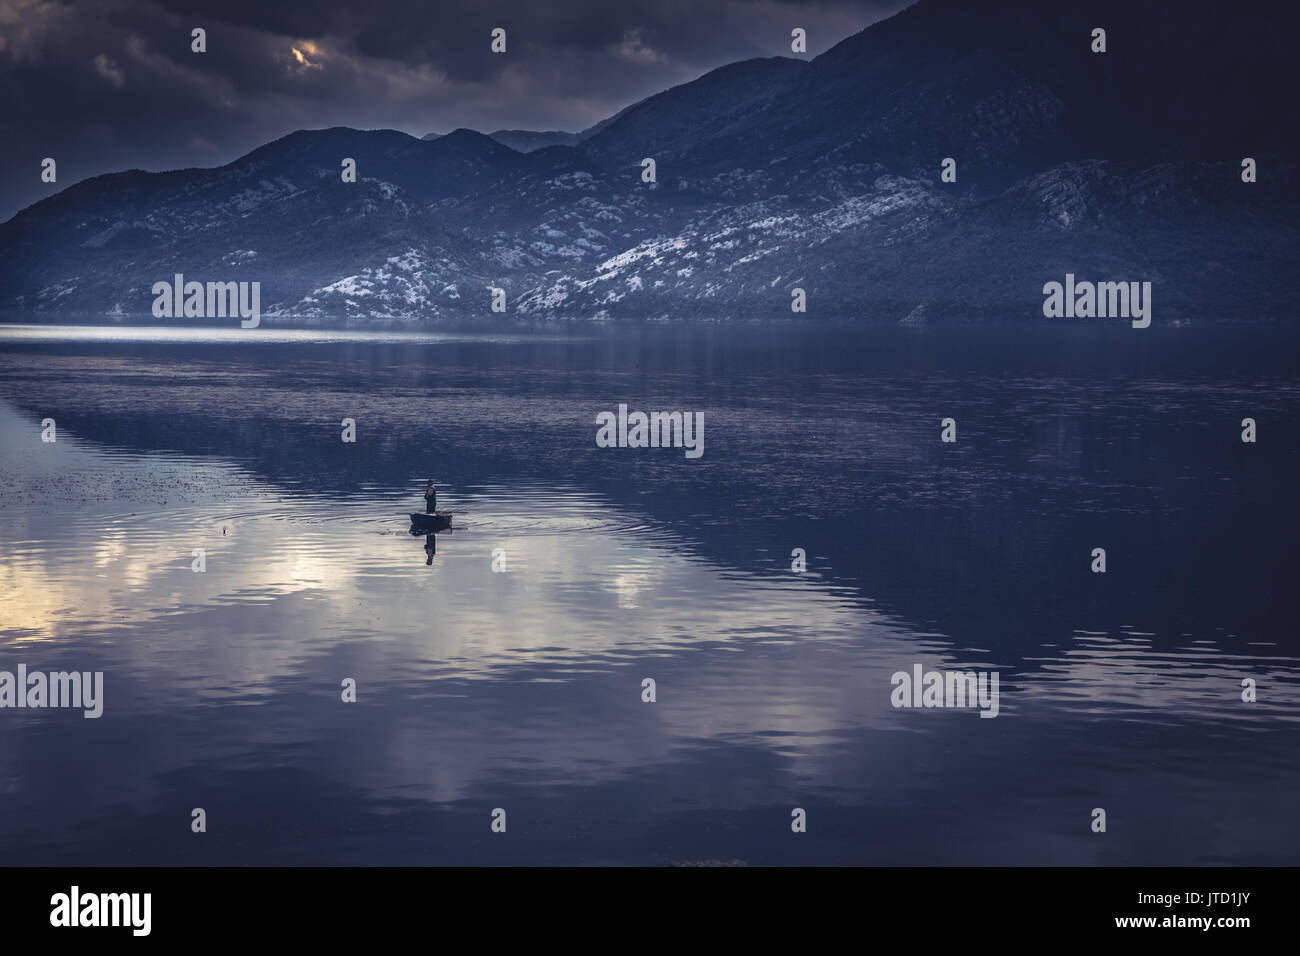 Idyllic mountains landscape with man in fishing boat in the middle of tranquil lake with water reflections during Stock Photo